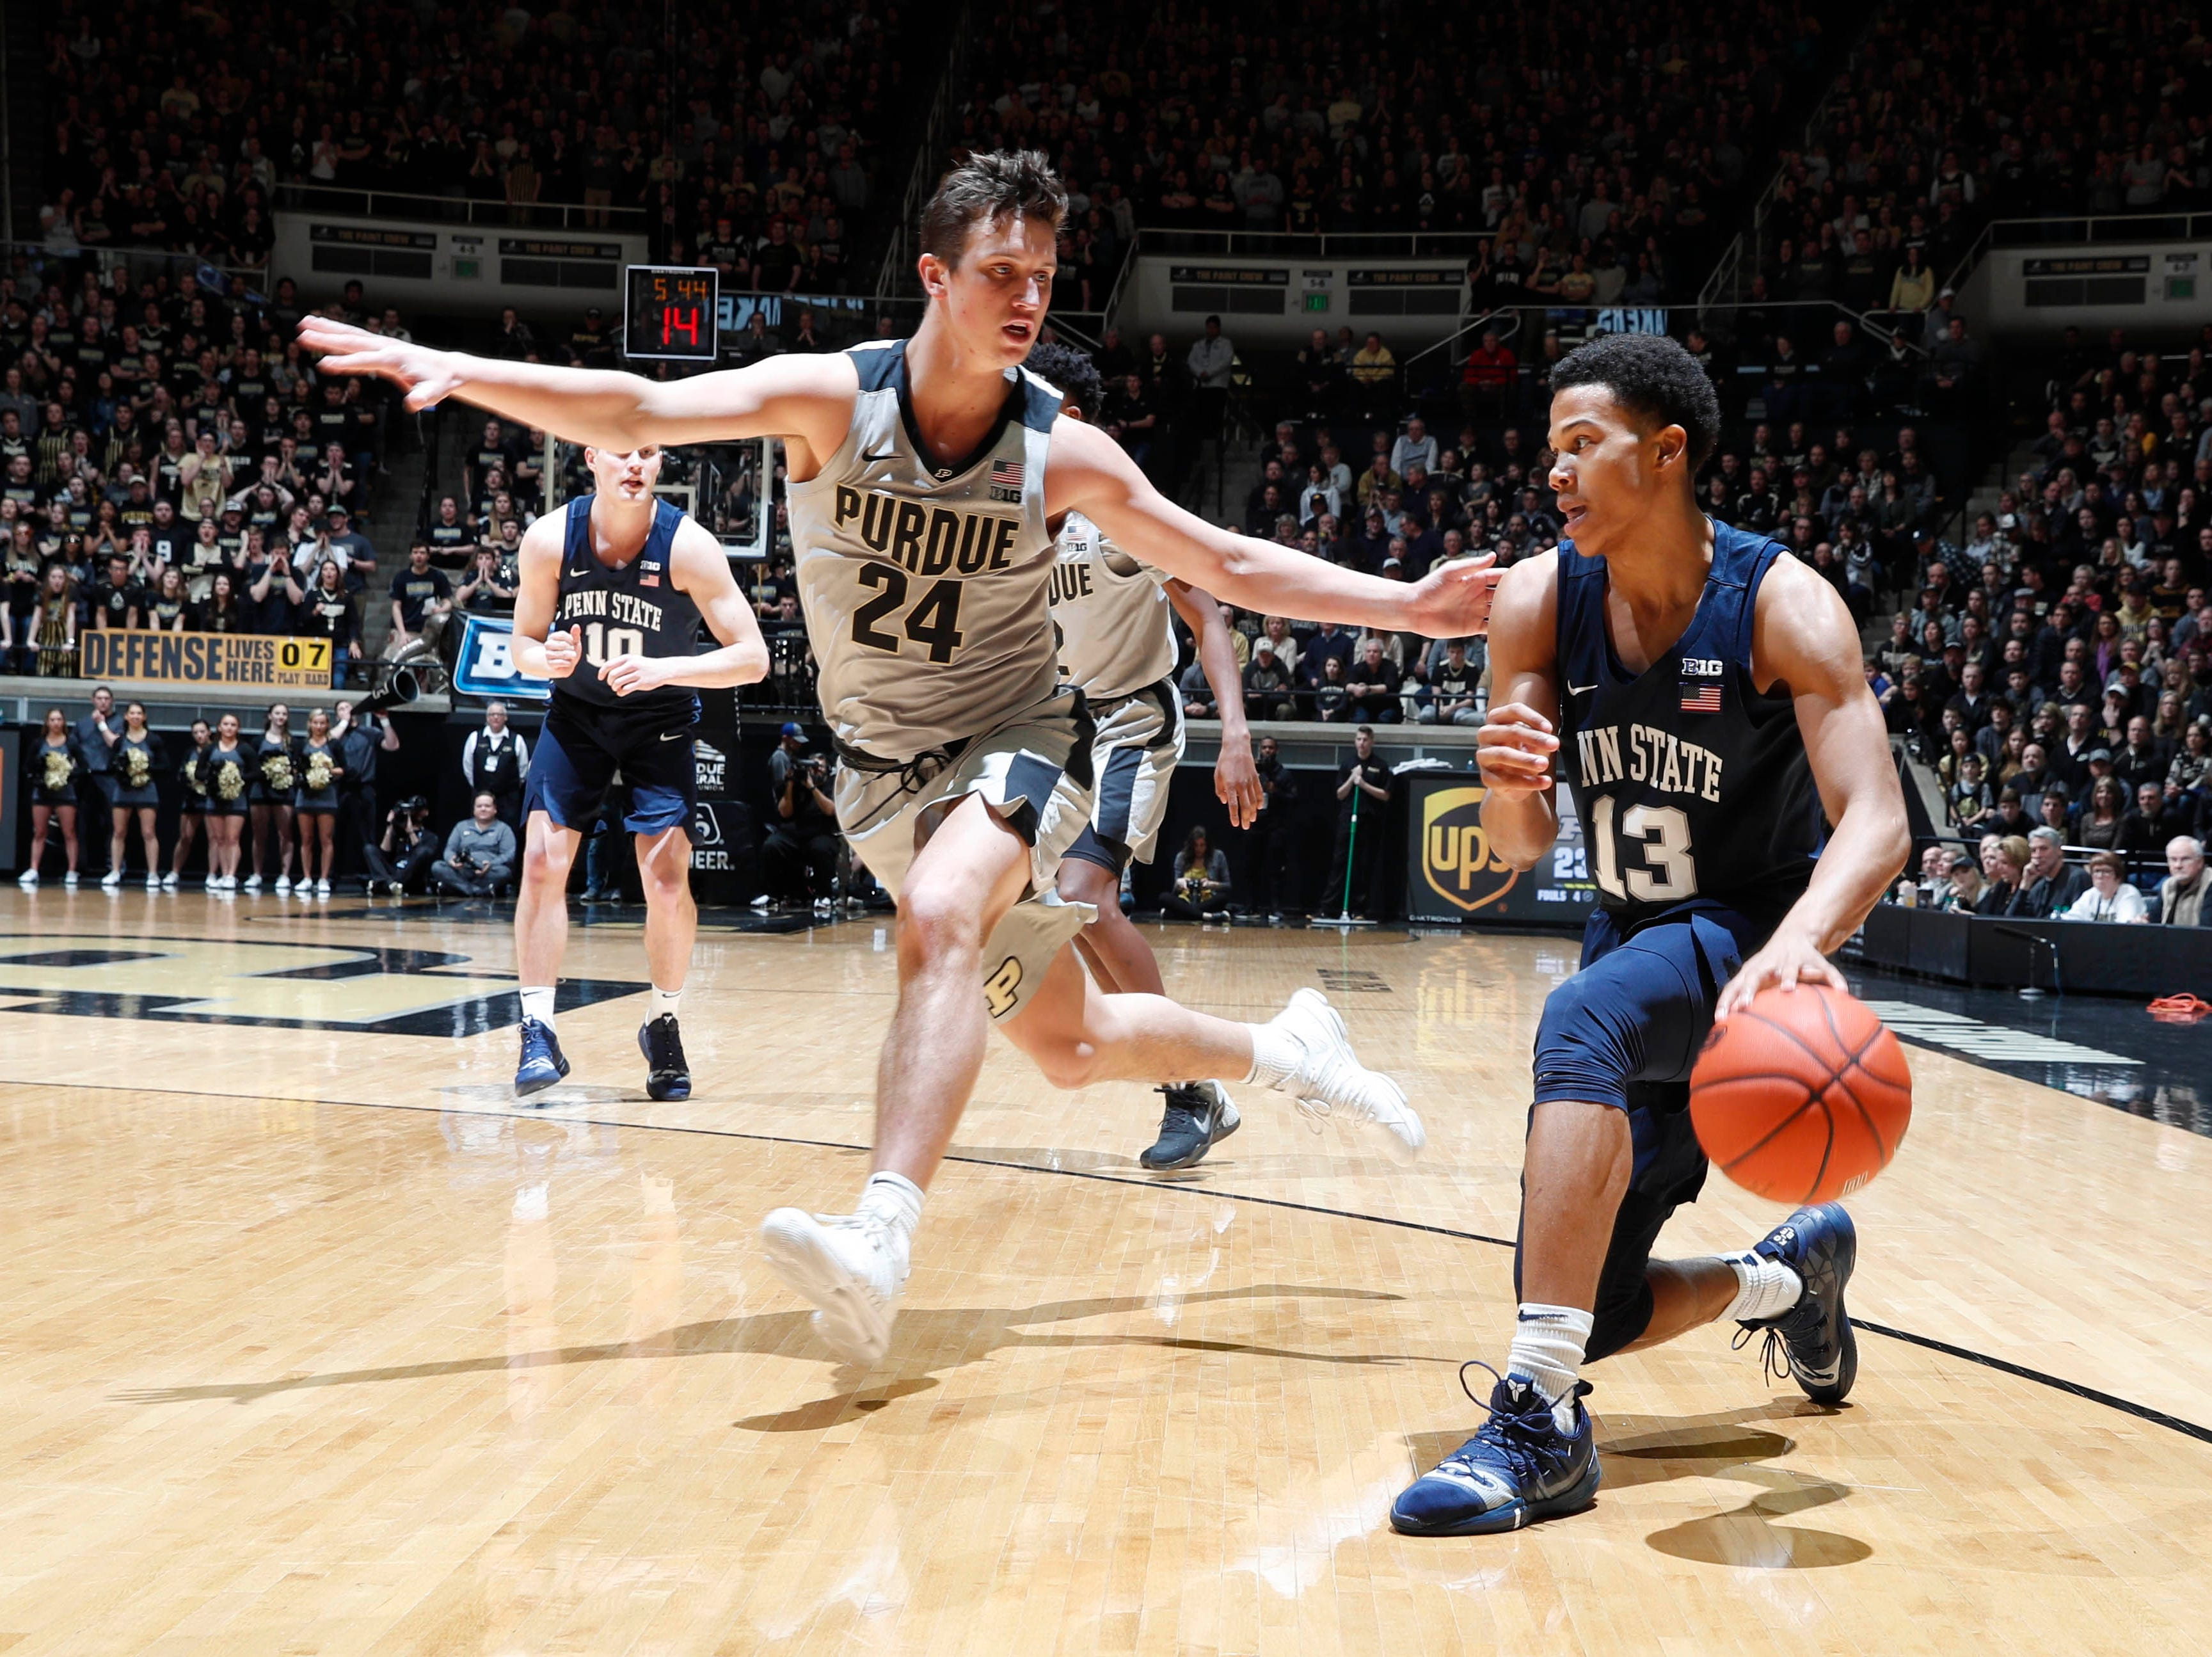 Feb 16, 2019; West Lafayette, IN, USA; Penn State Nittany Lions guard Rasir Bolton (13) drives to the basket against Purdue Boilermakers forward Grady Eifert (24) during the first half at Mackey Arena. Mandatory Credit: Brian Spurlock-USA TODAY Sports